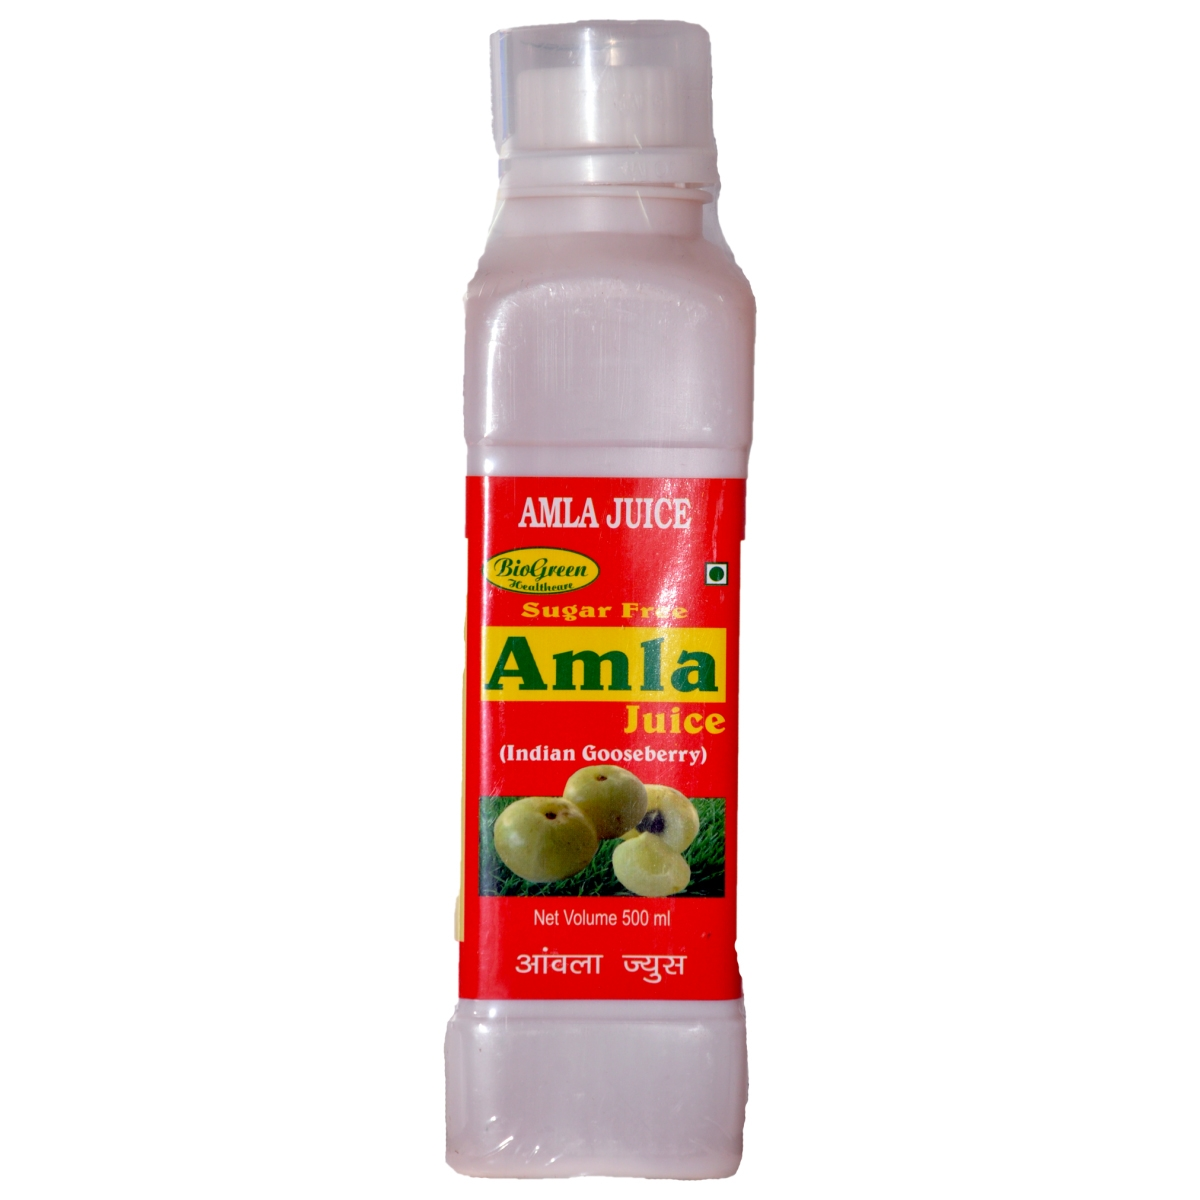 Amla Juice In Giridih